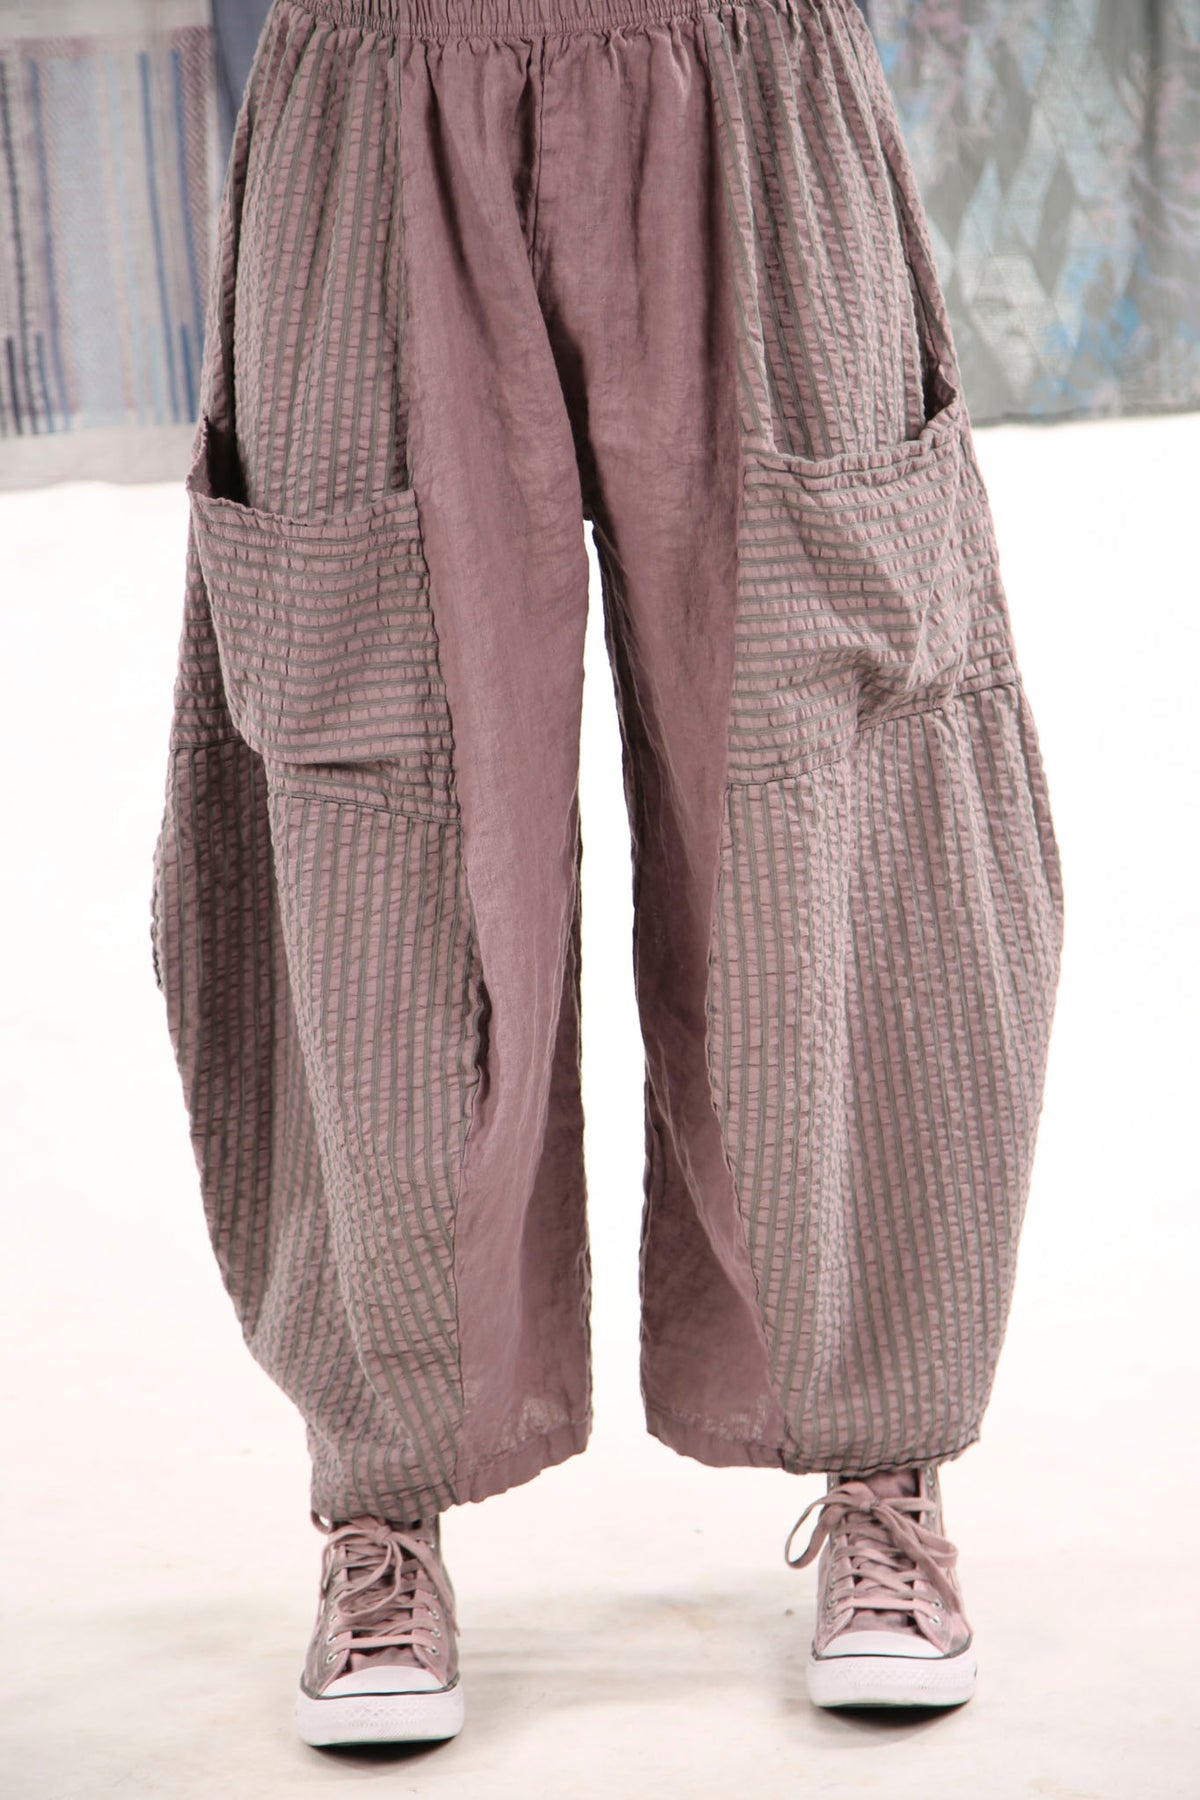 3240 Mojo Pant Plum Haze with herb stripe  1/0/0 overdye?